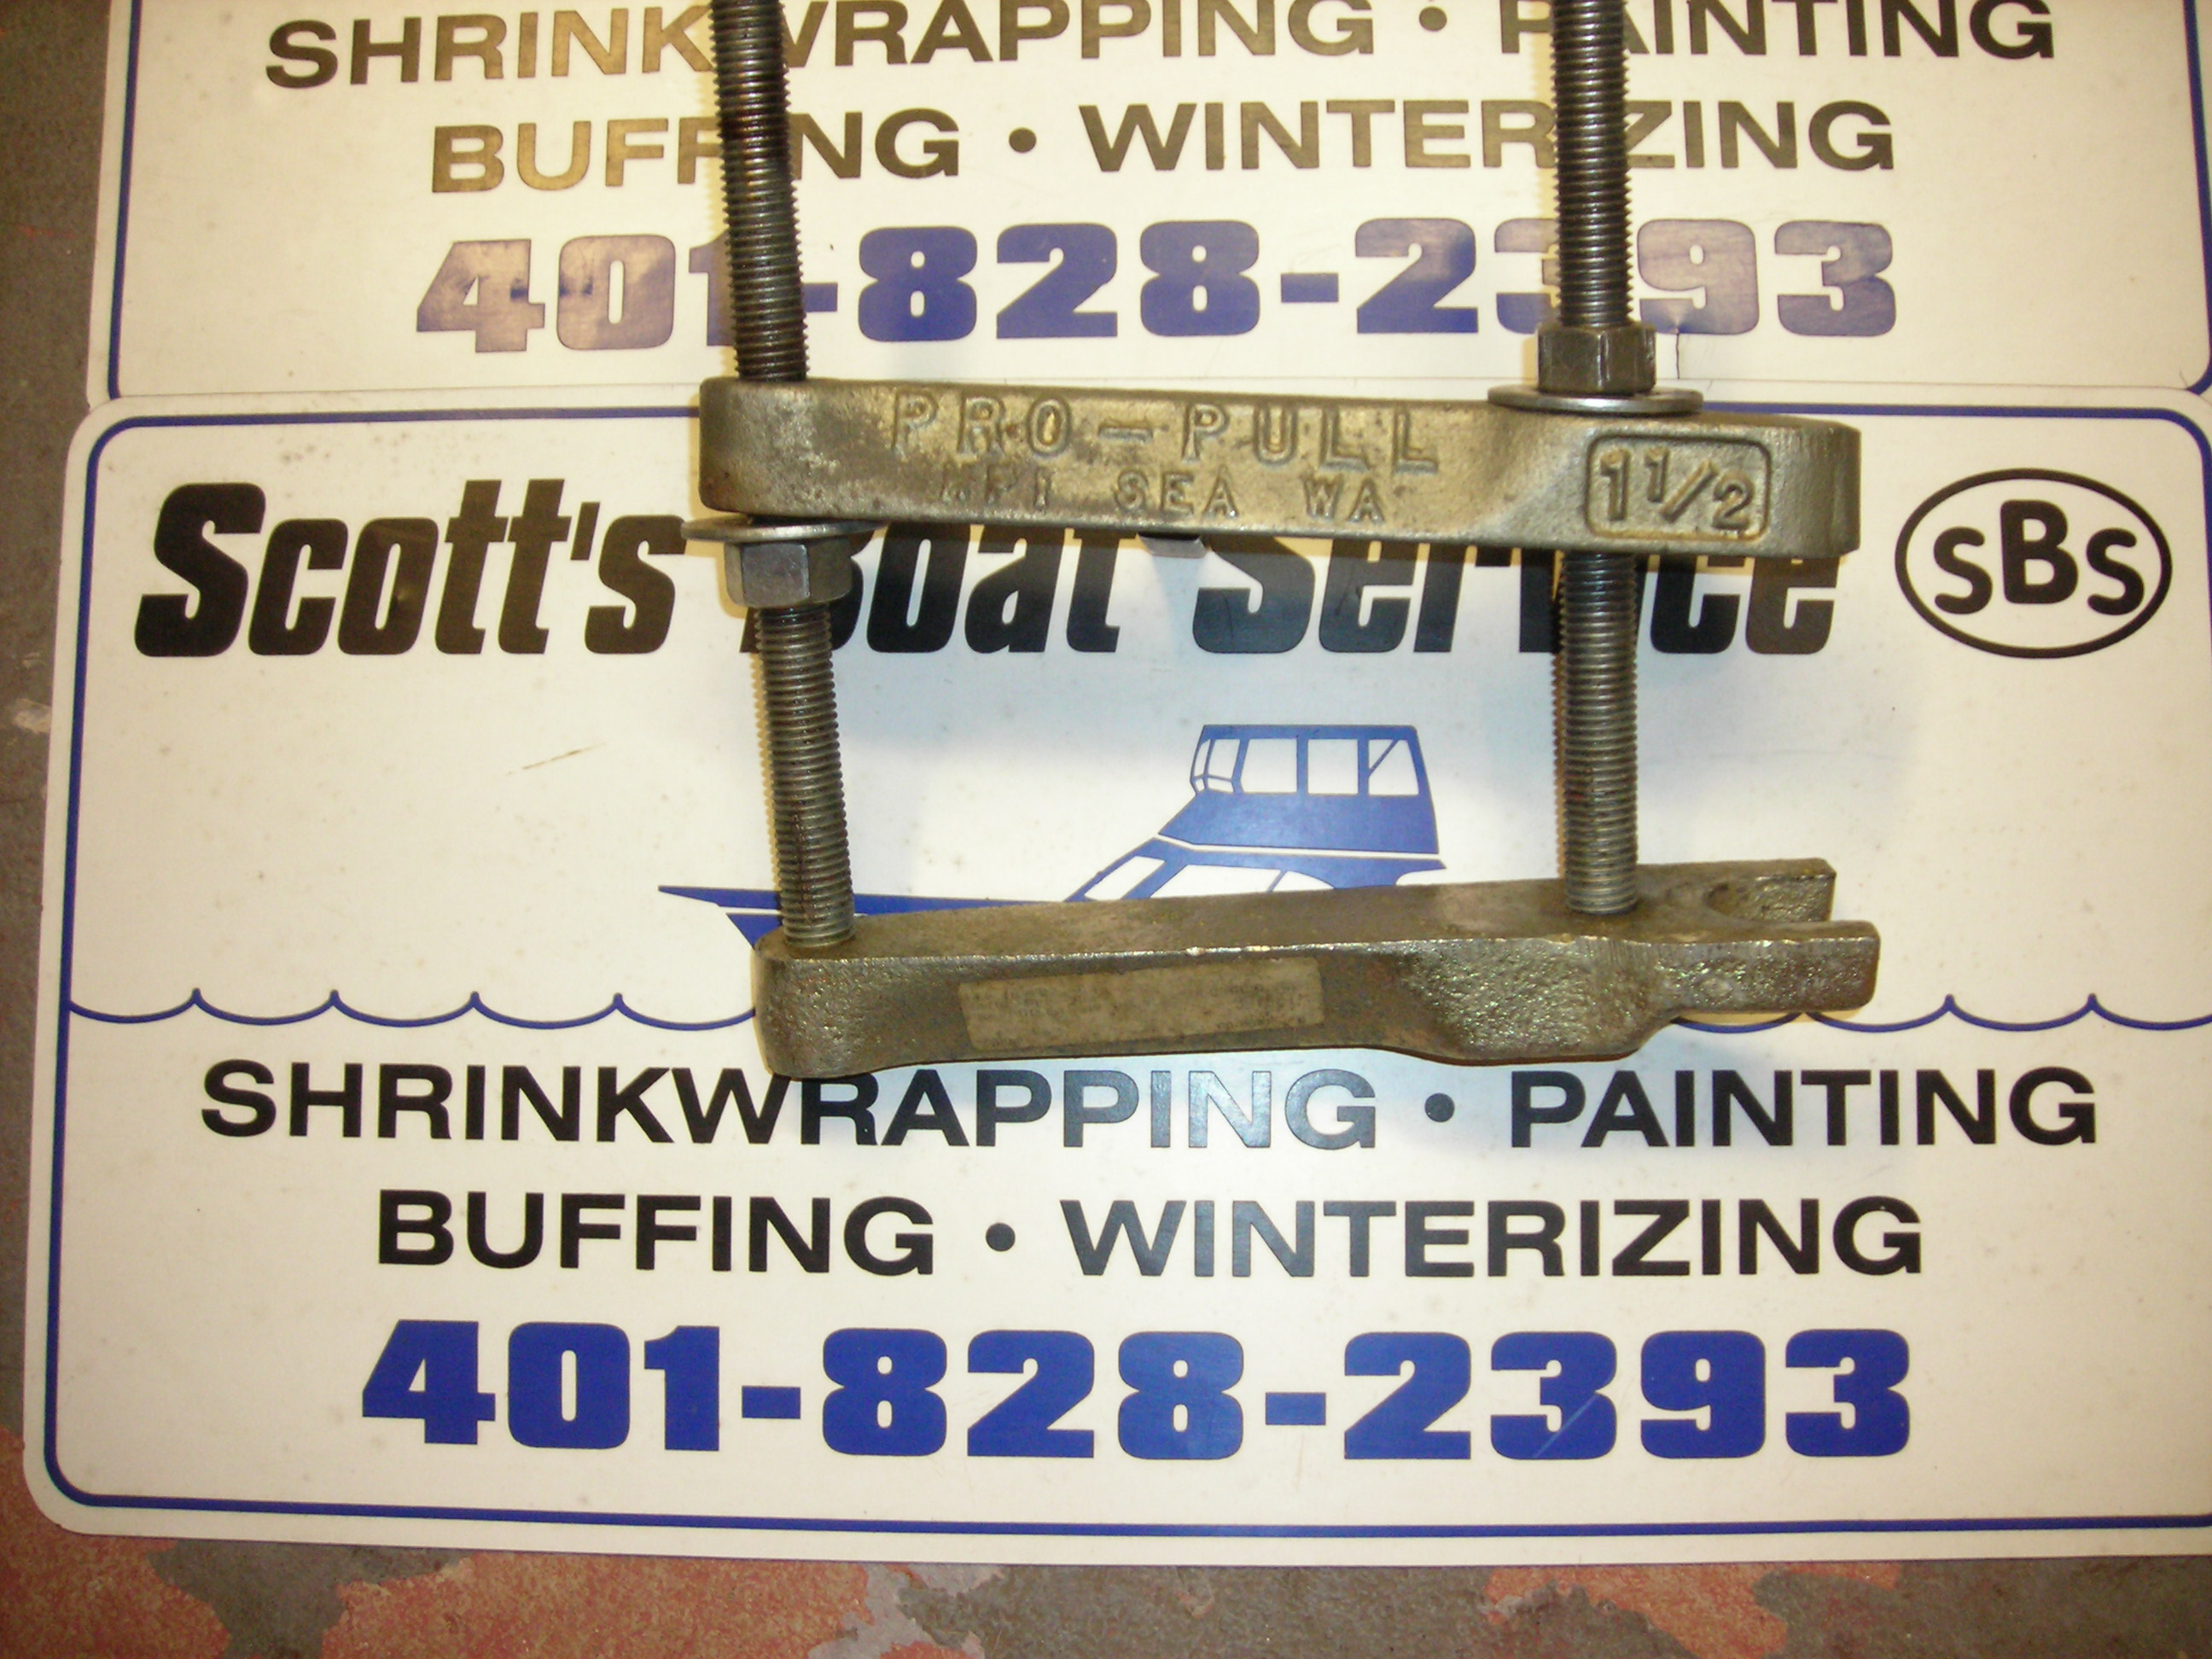 SCOTT'S BOAT SERVICE: REPAIRS PAGE